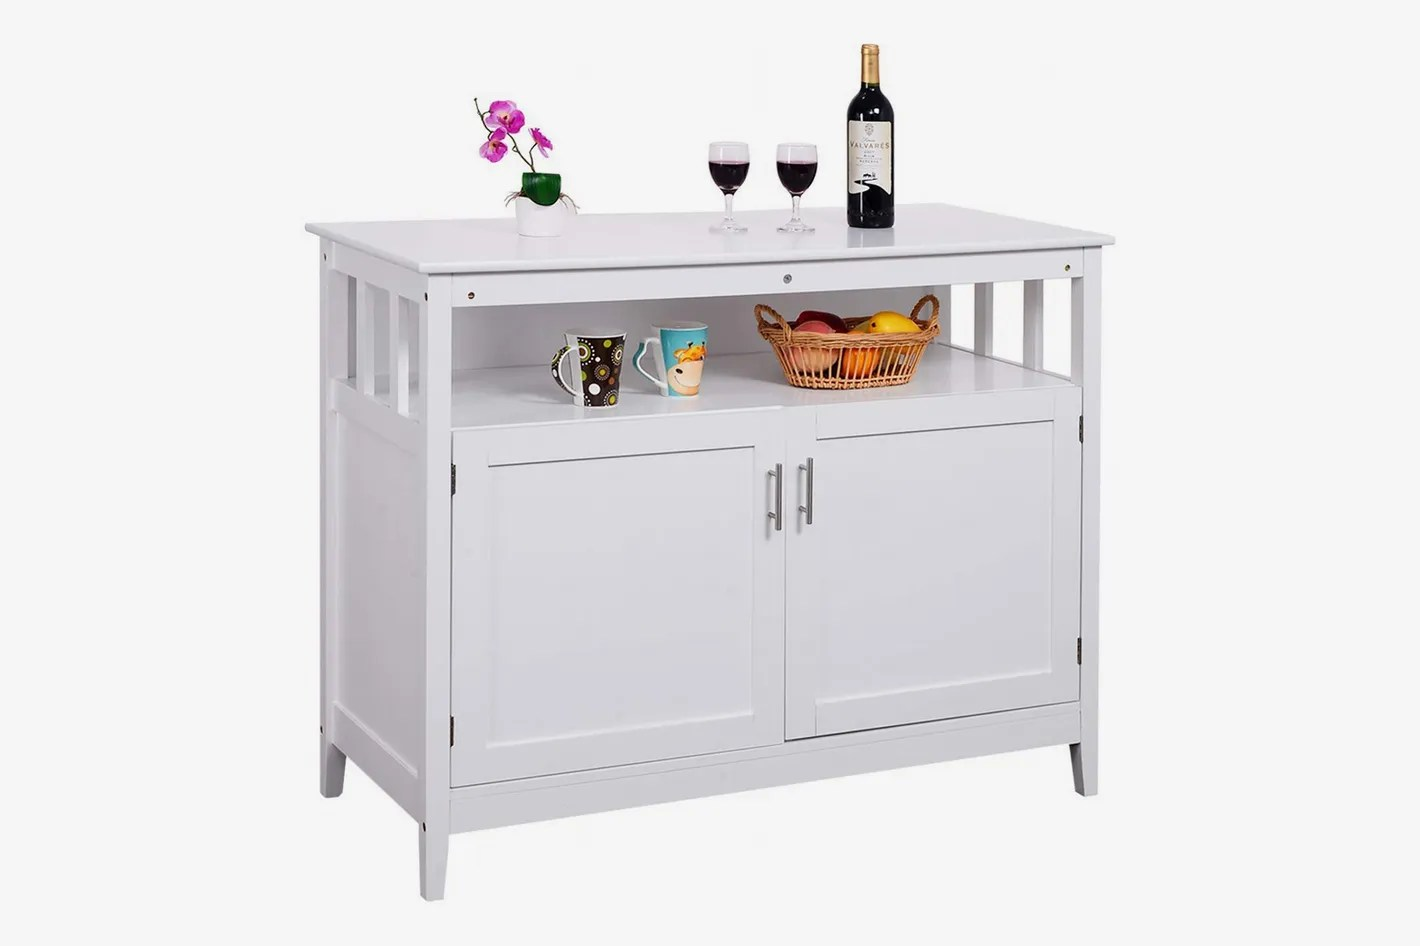 Buffet Sideboard With Wine Rack 11 Best Sideboards And Buffets 2018